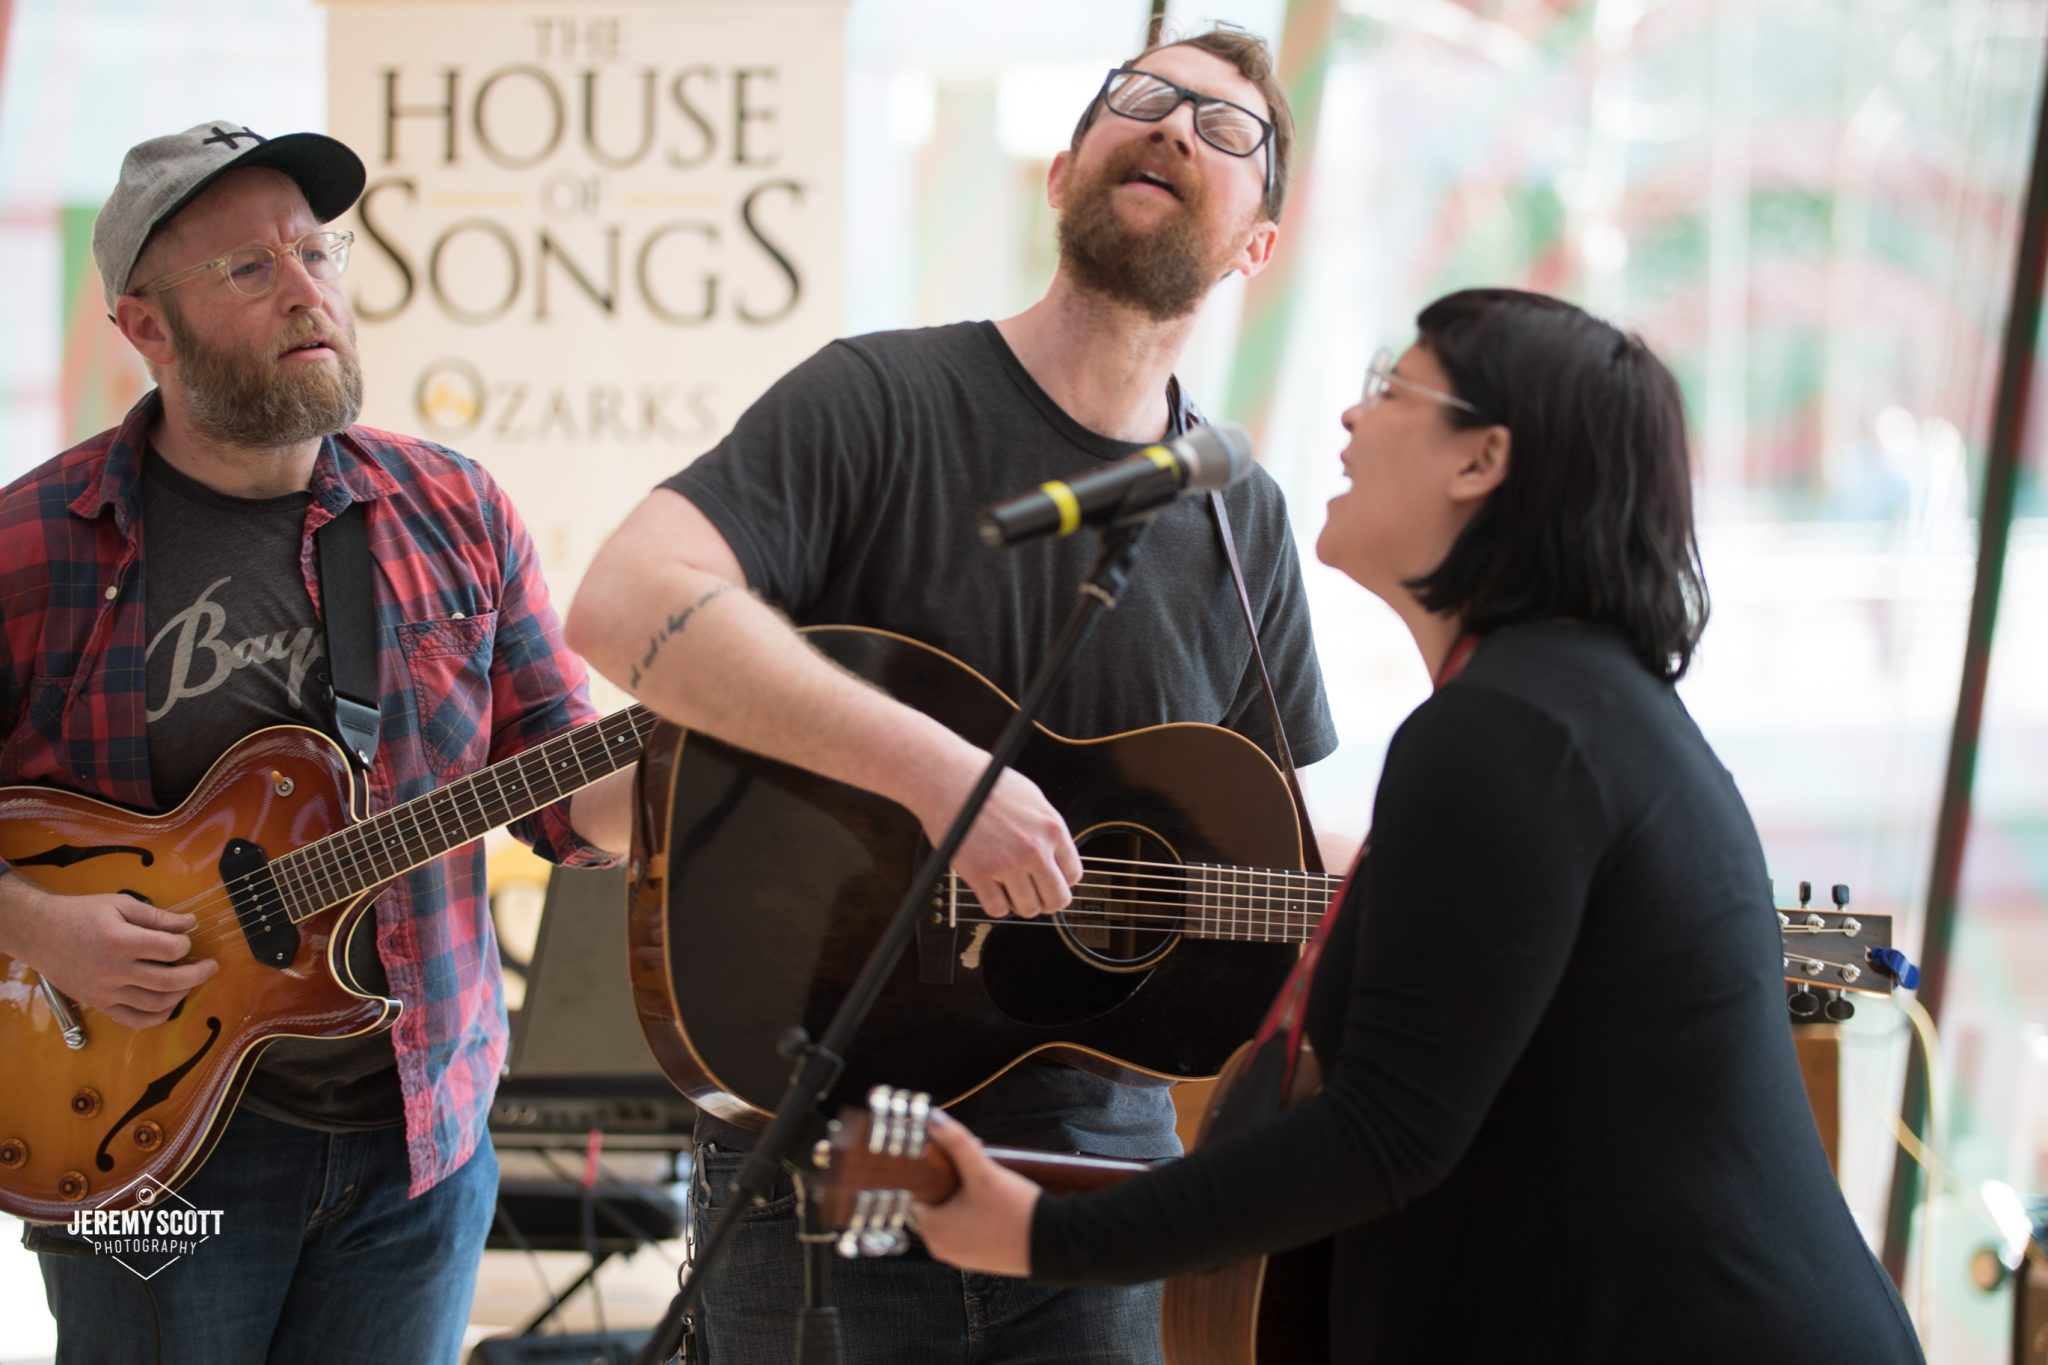 From left: Bryan Hembree and Ryan Pickop, both of Fayetteville, Arkansas, and Kalyn Fay of Tulsa, Oklahoma, work on a song together. (Photo by Jeremy Scott)